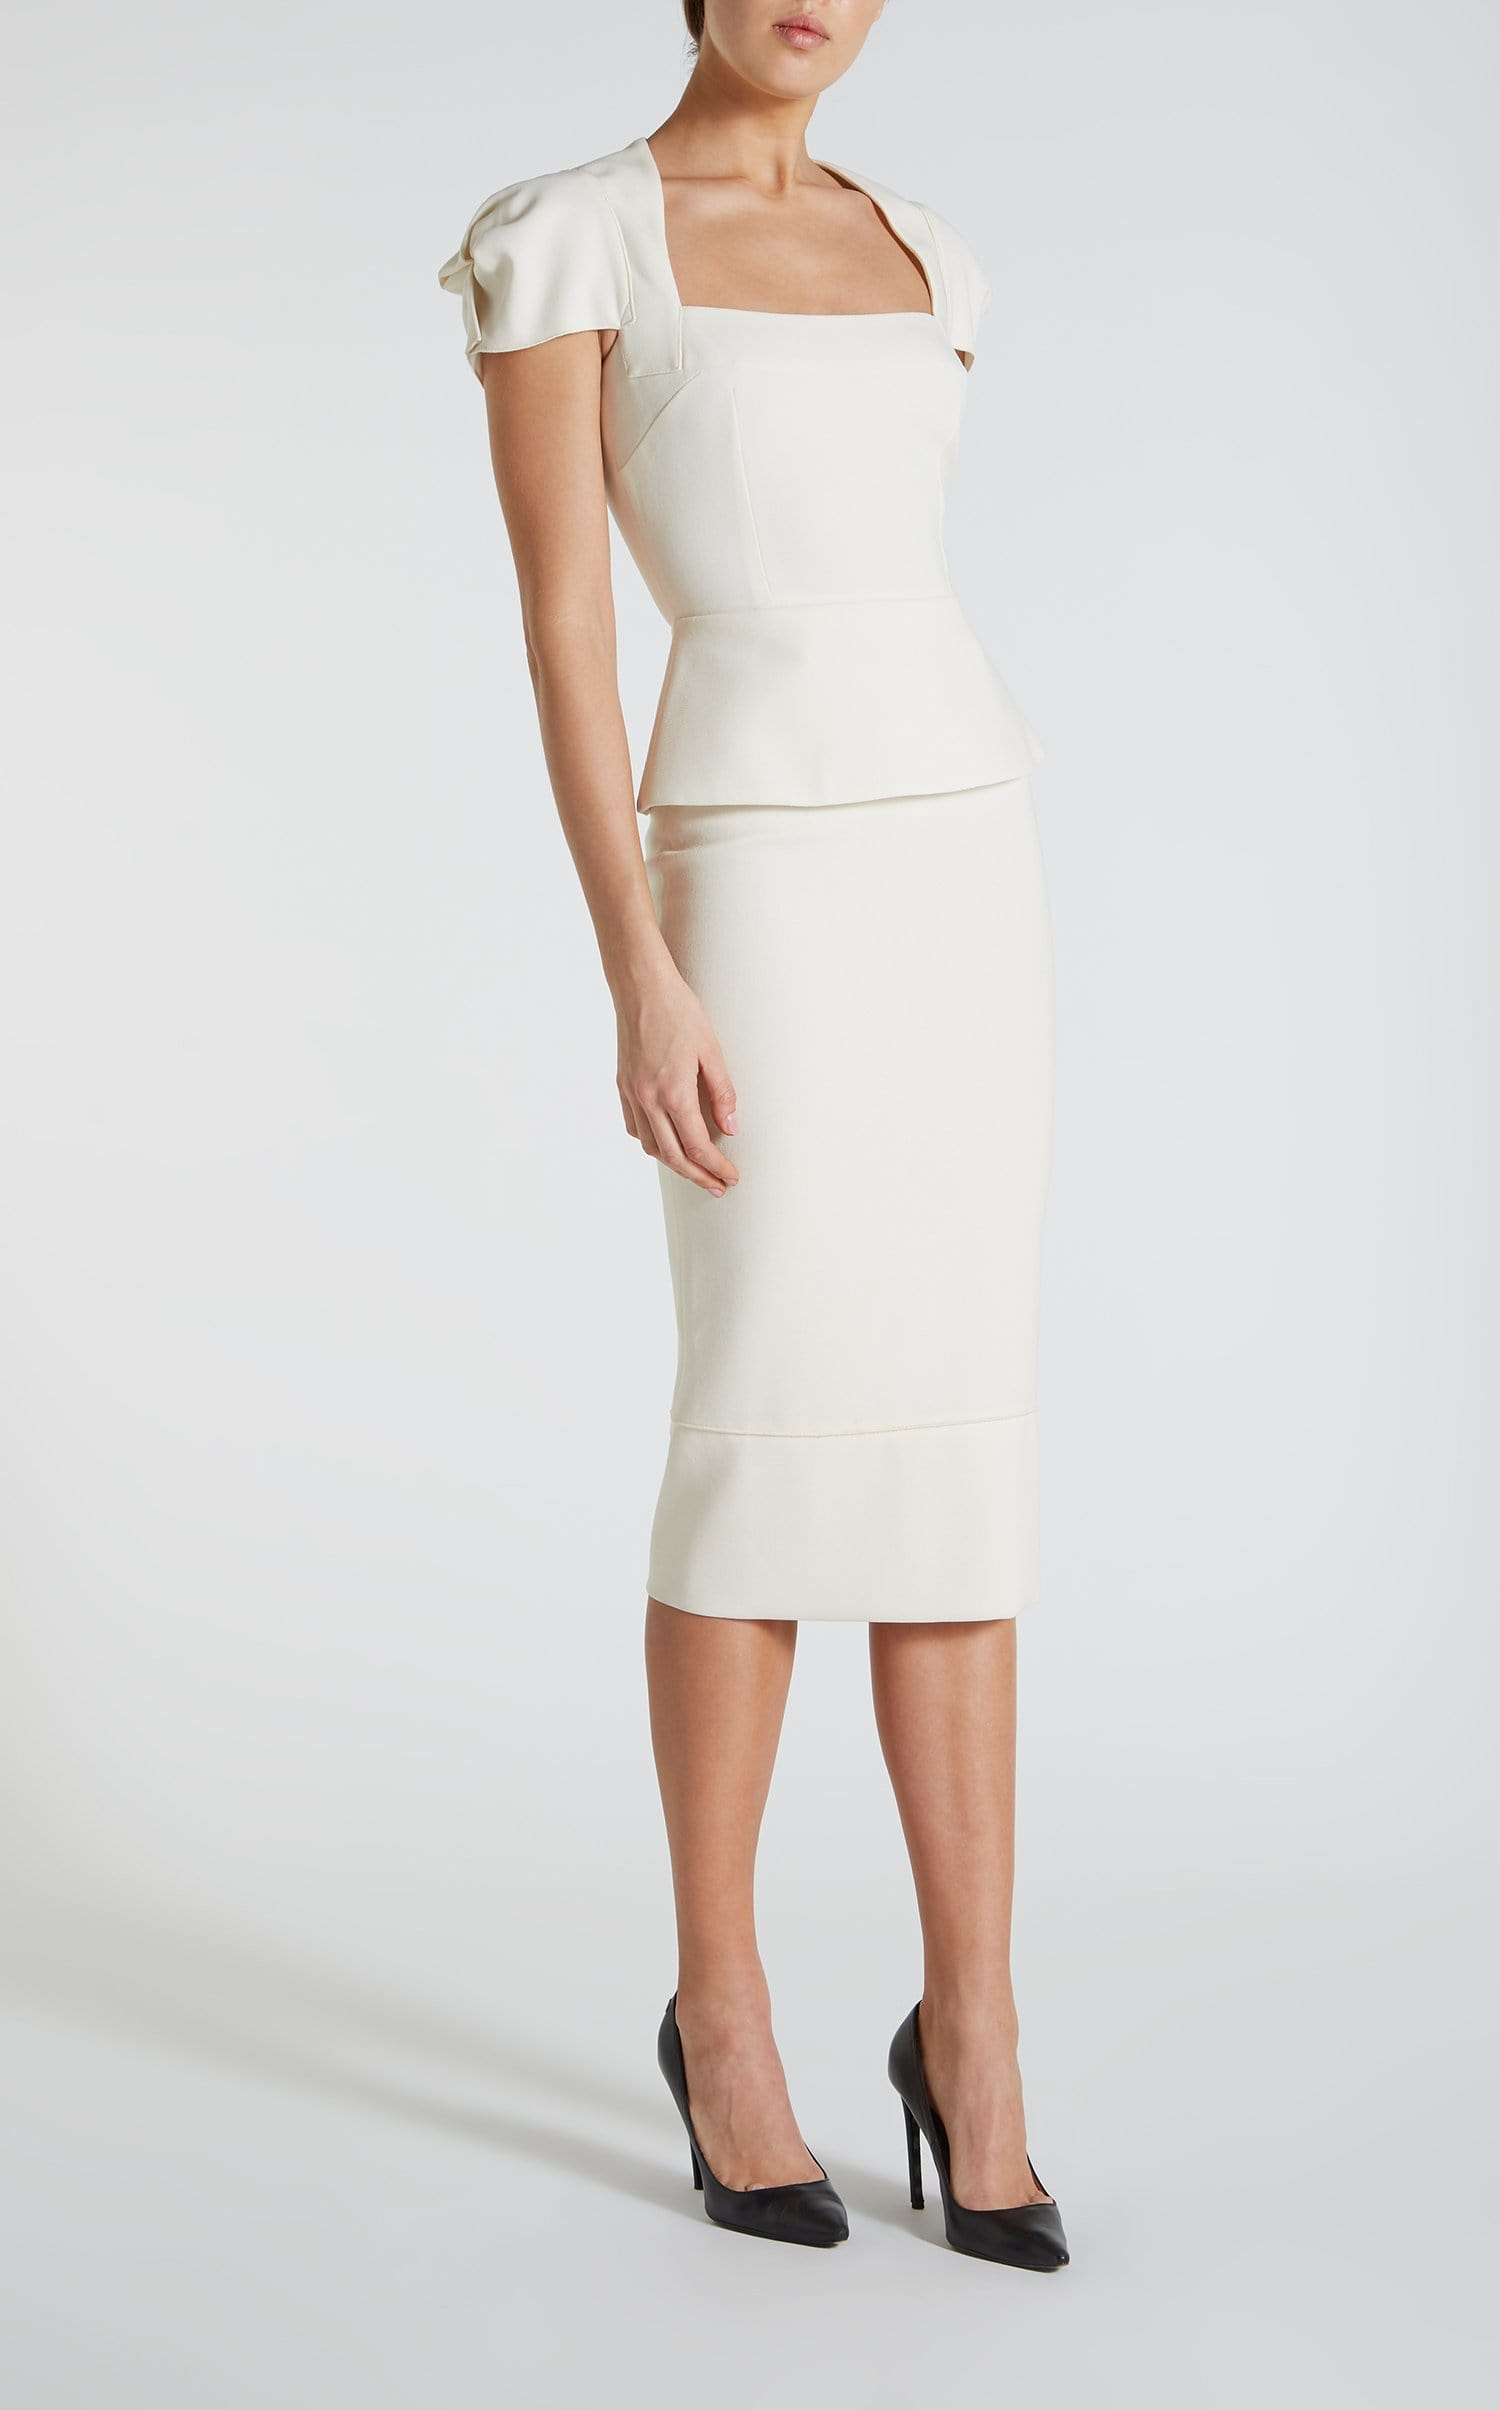 Galaxy Skirt In White from Roland Mouret